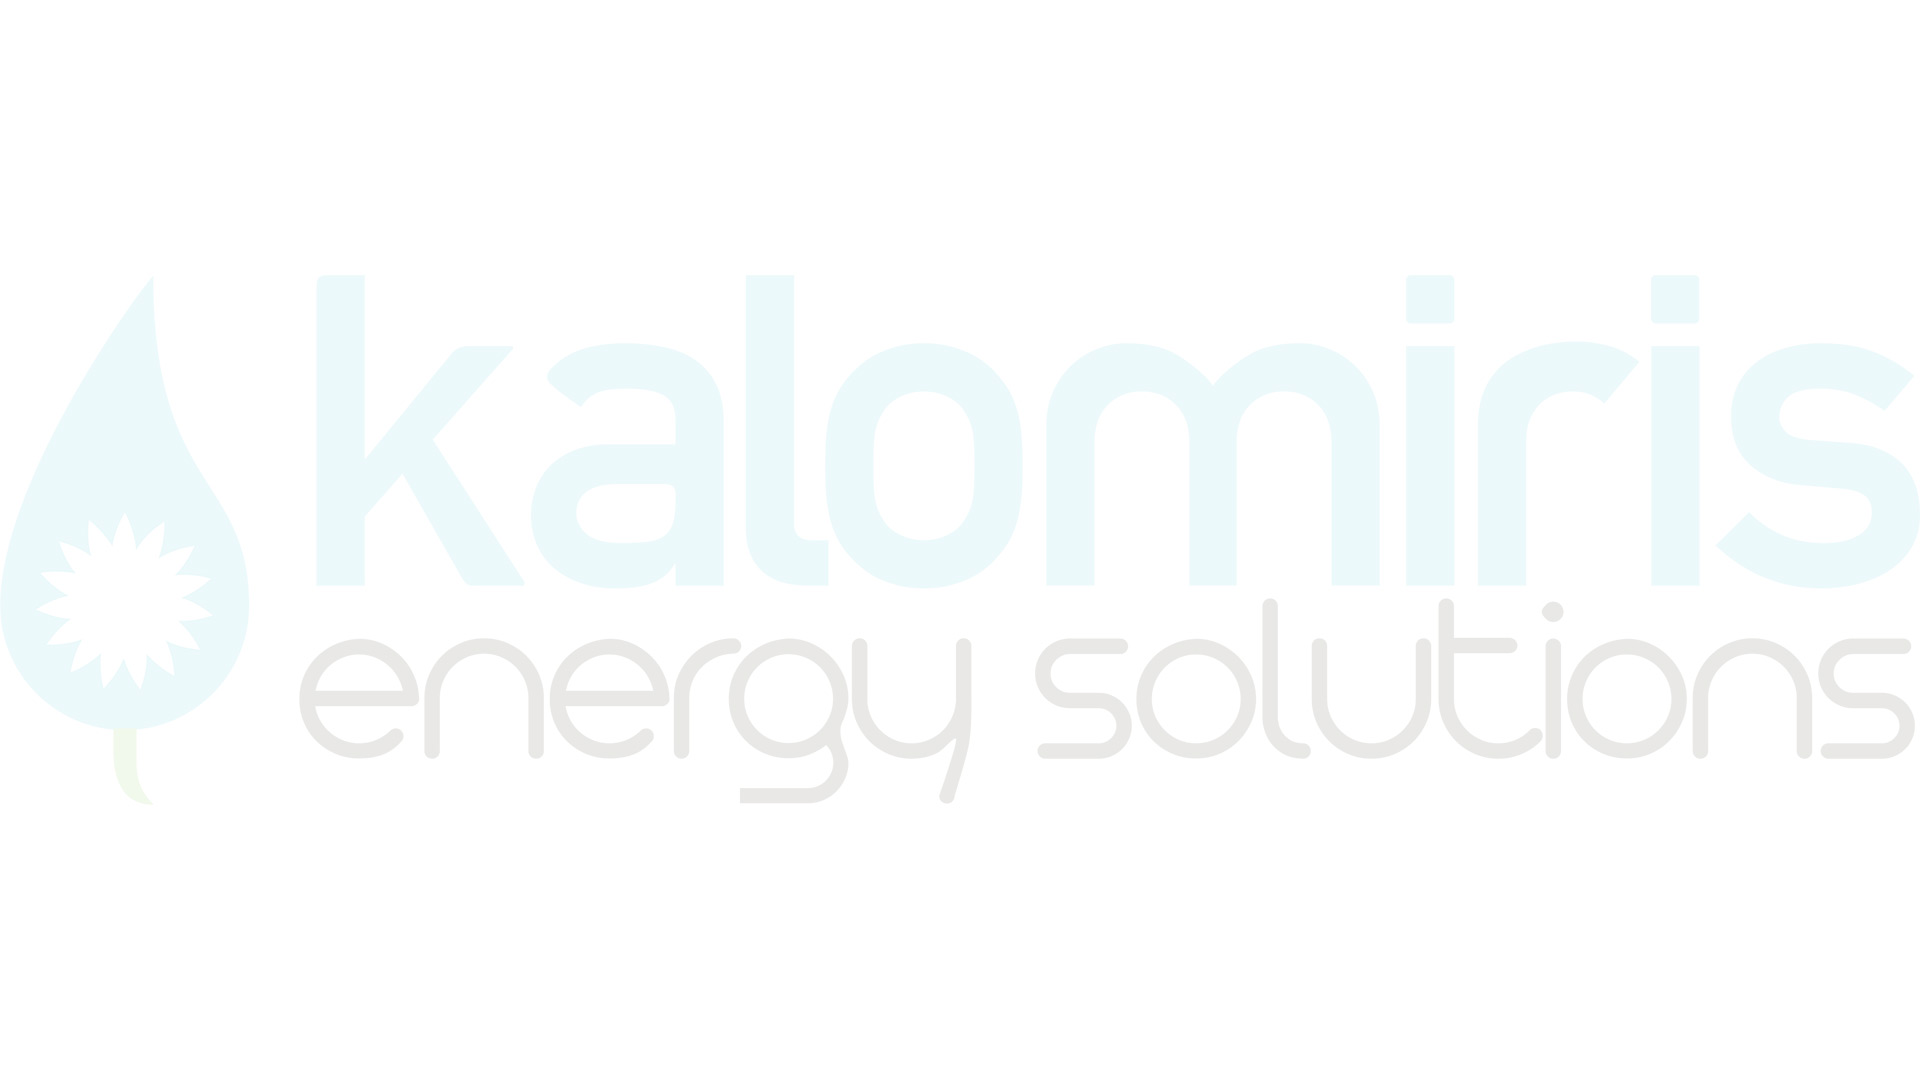 Ceiling Fan CASAFAN ECO NEO II 132 WE Beech /Maple 52 (132cm) with Light KIT